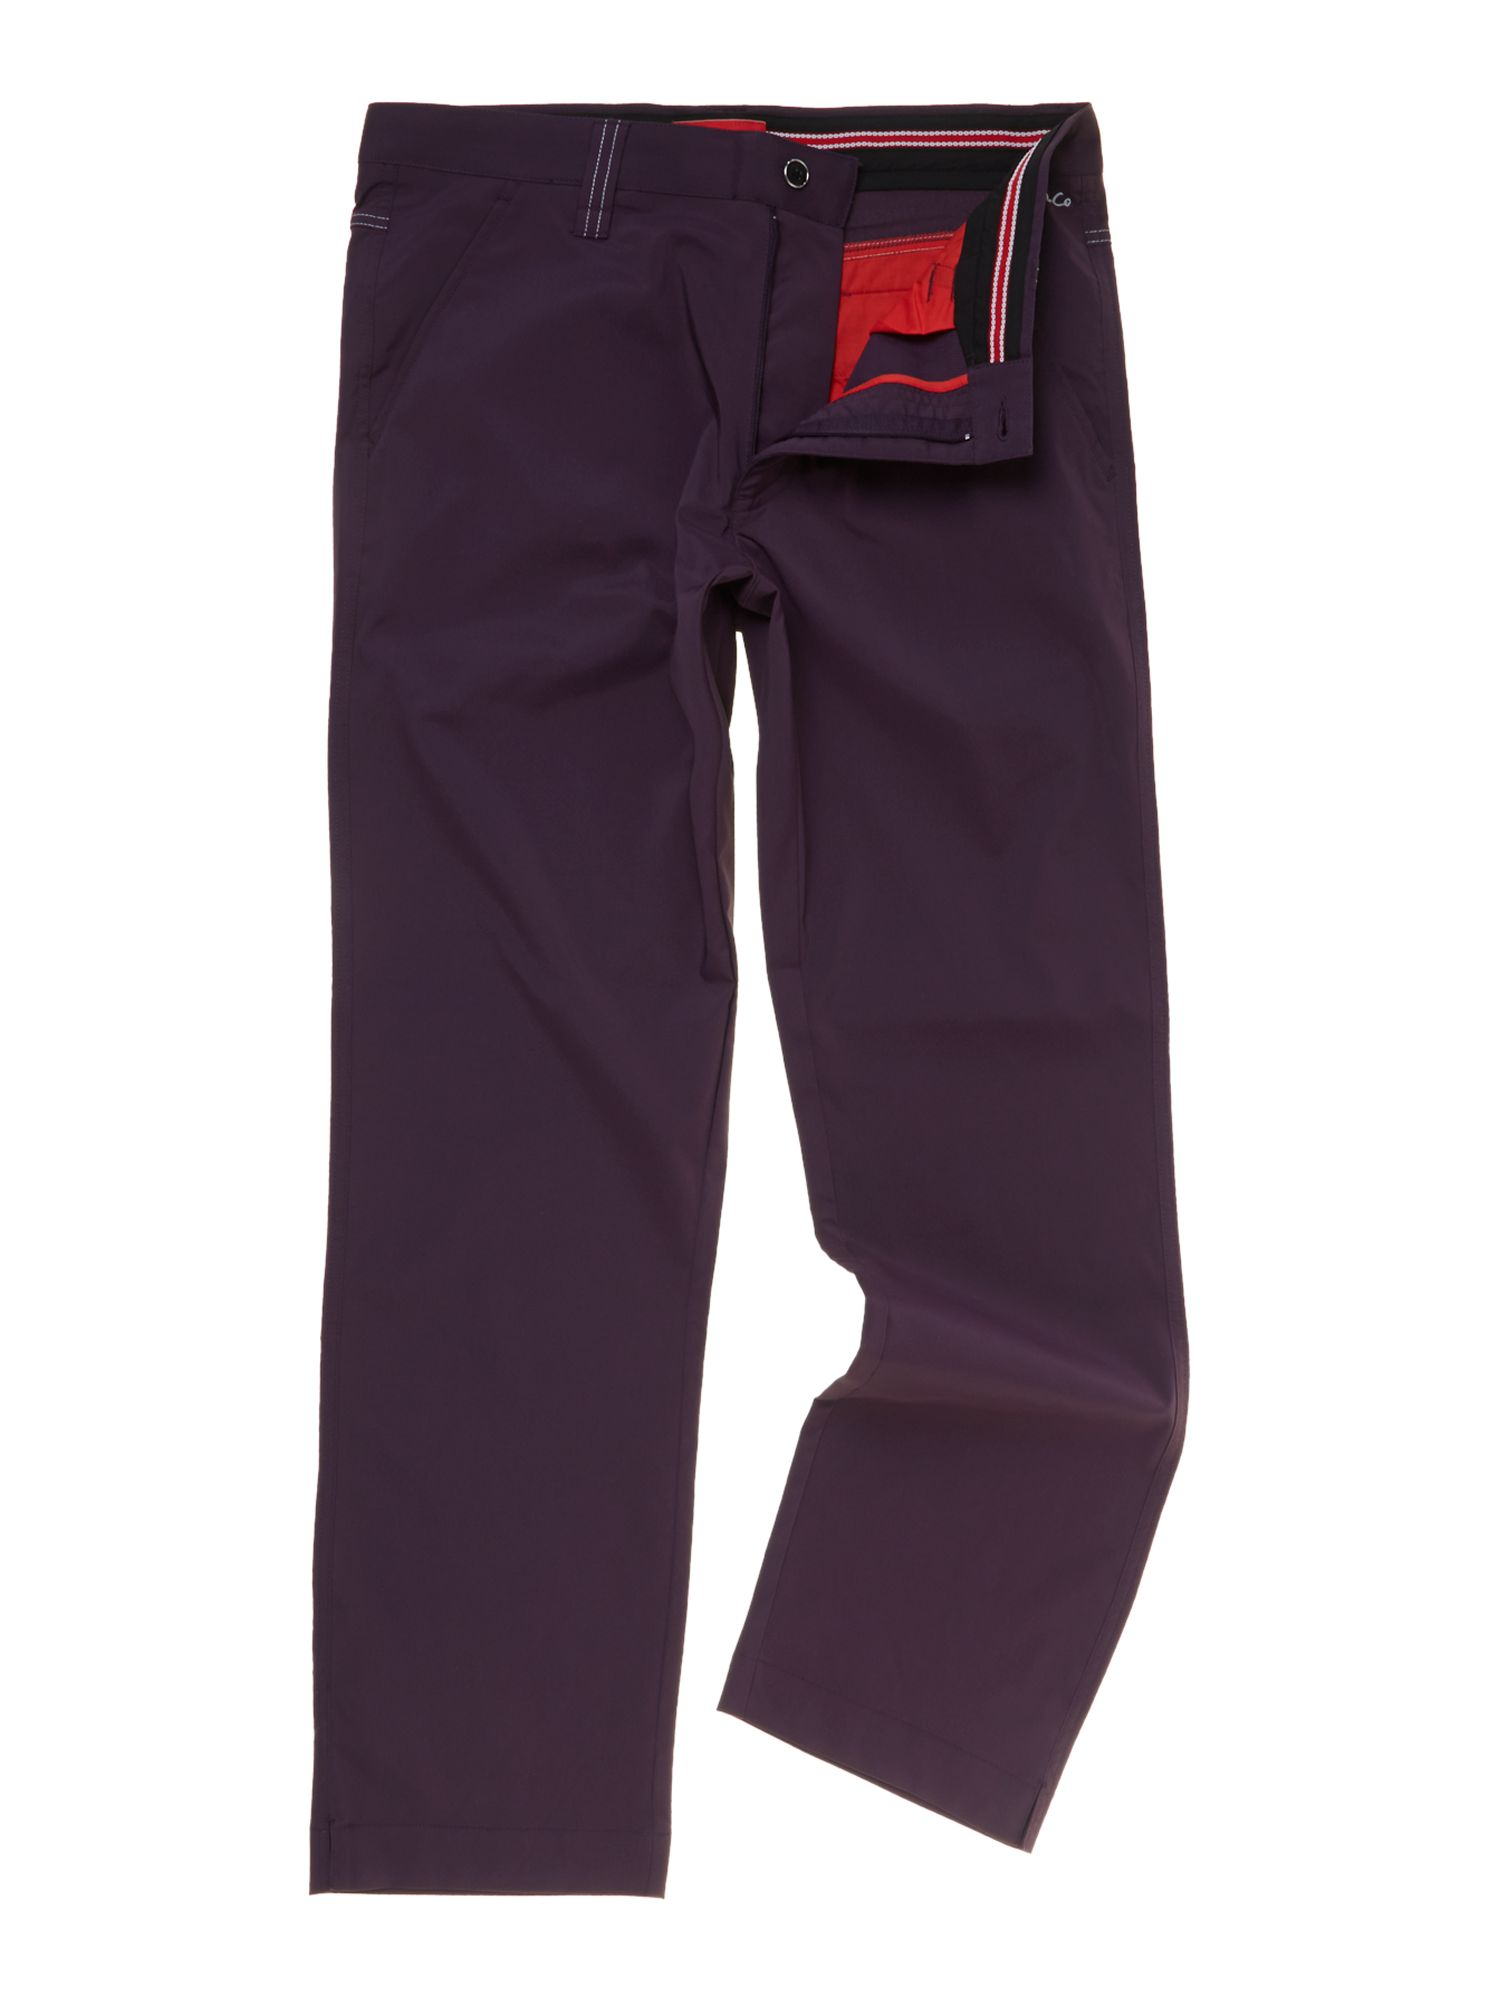 Dwyers and Co Men's Dwyers and Co Micro tech 2.0 trouser, Grape